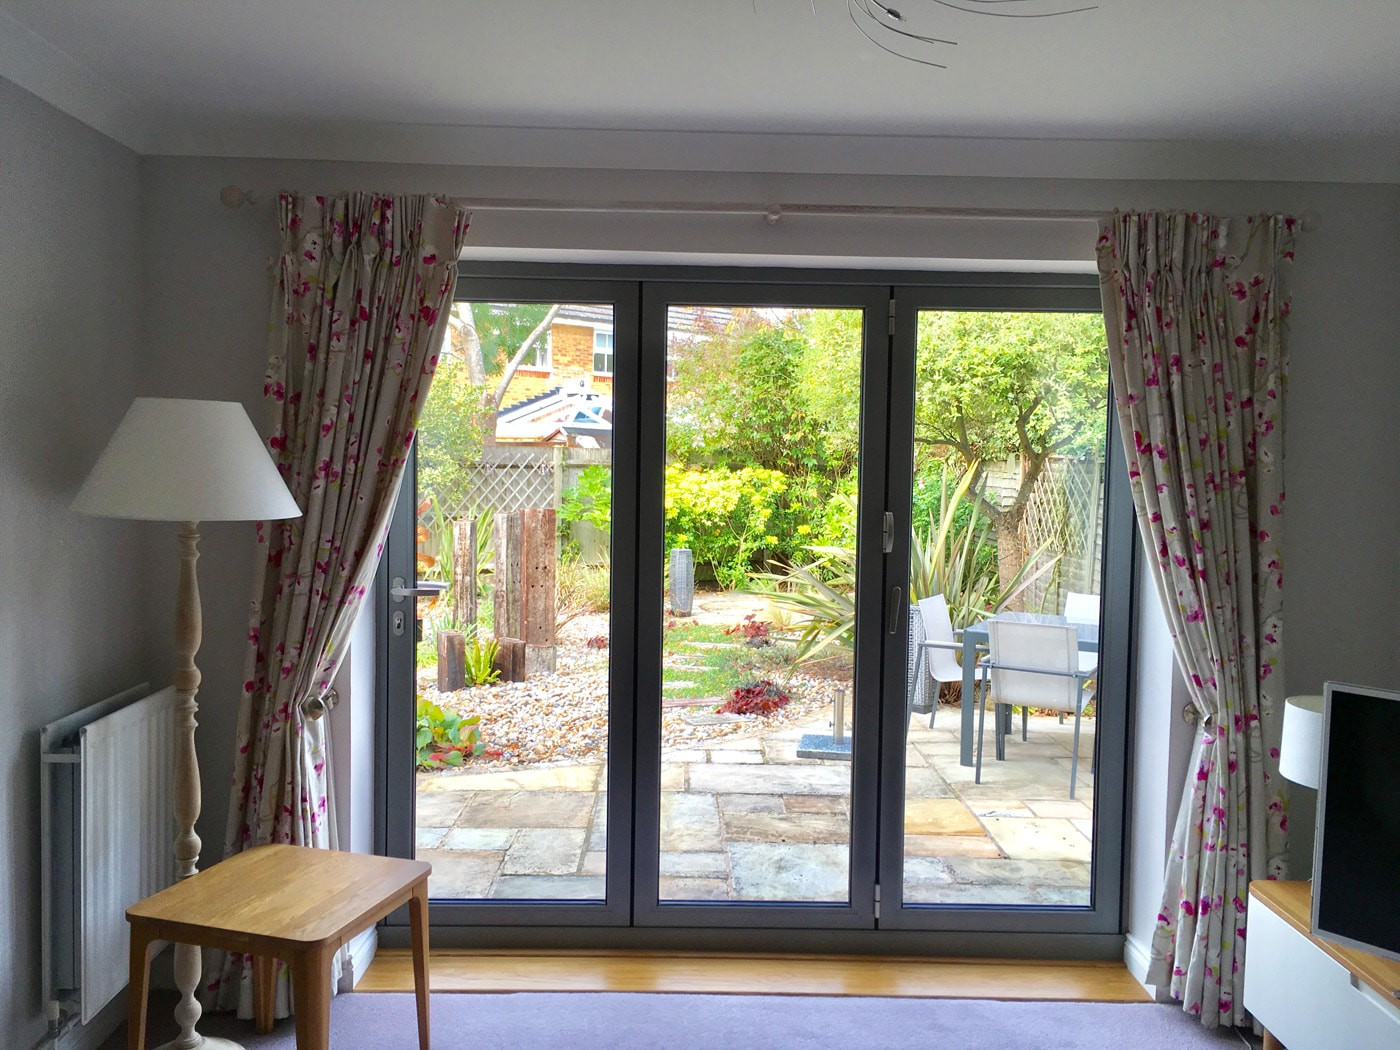 Origin bifolding doors - supply & install service in Kingston | Hamiltons